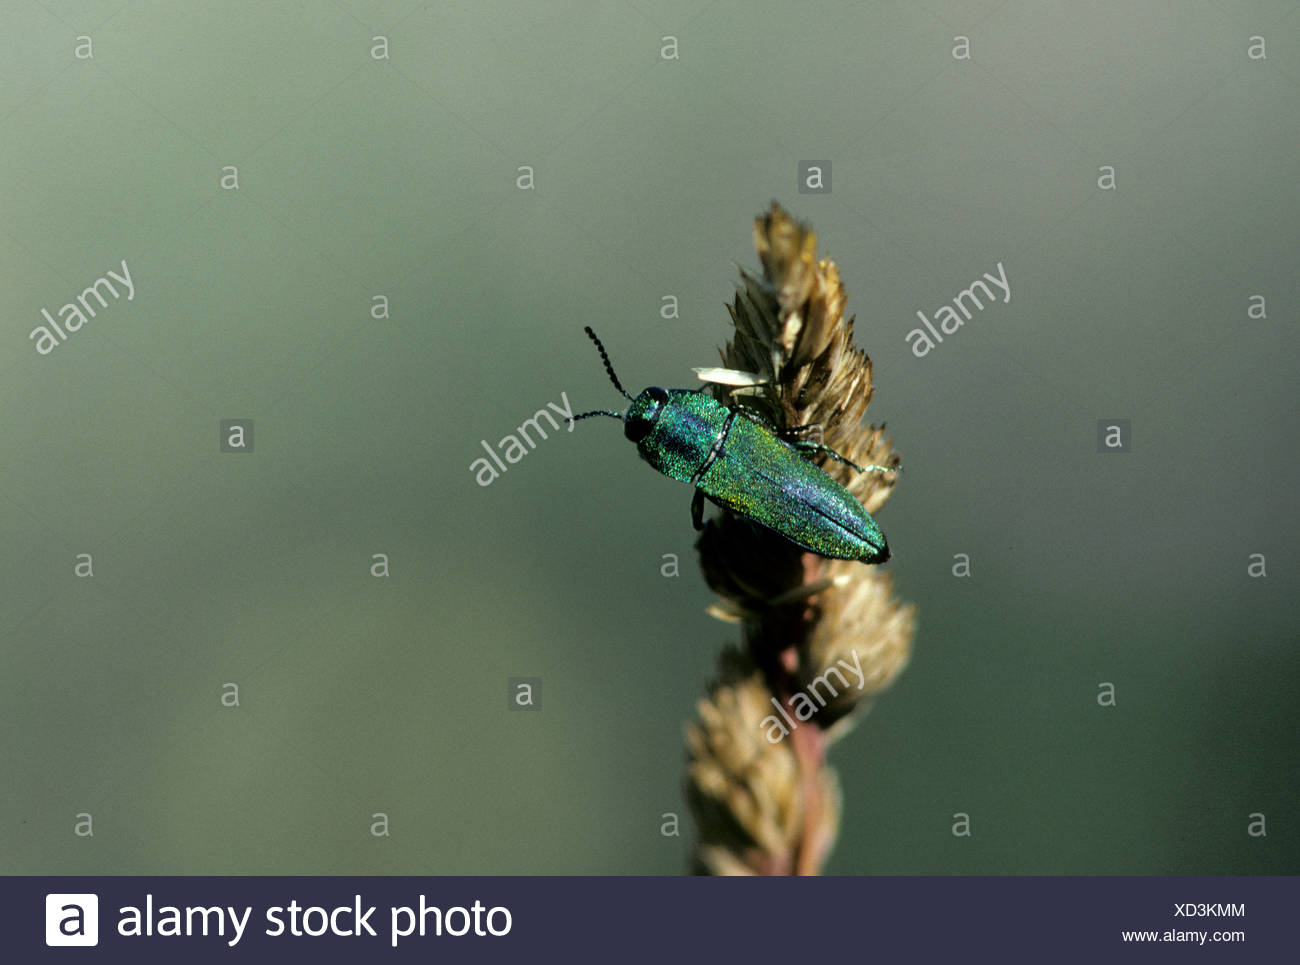 Oak Borer Agrilus angustulus, Buprestoidae, beatle, Provence, France, insects - Stock Image